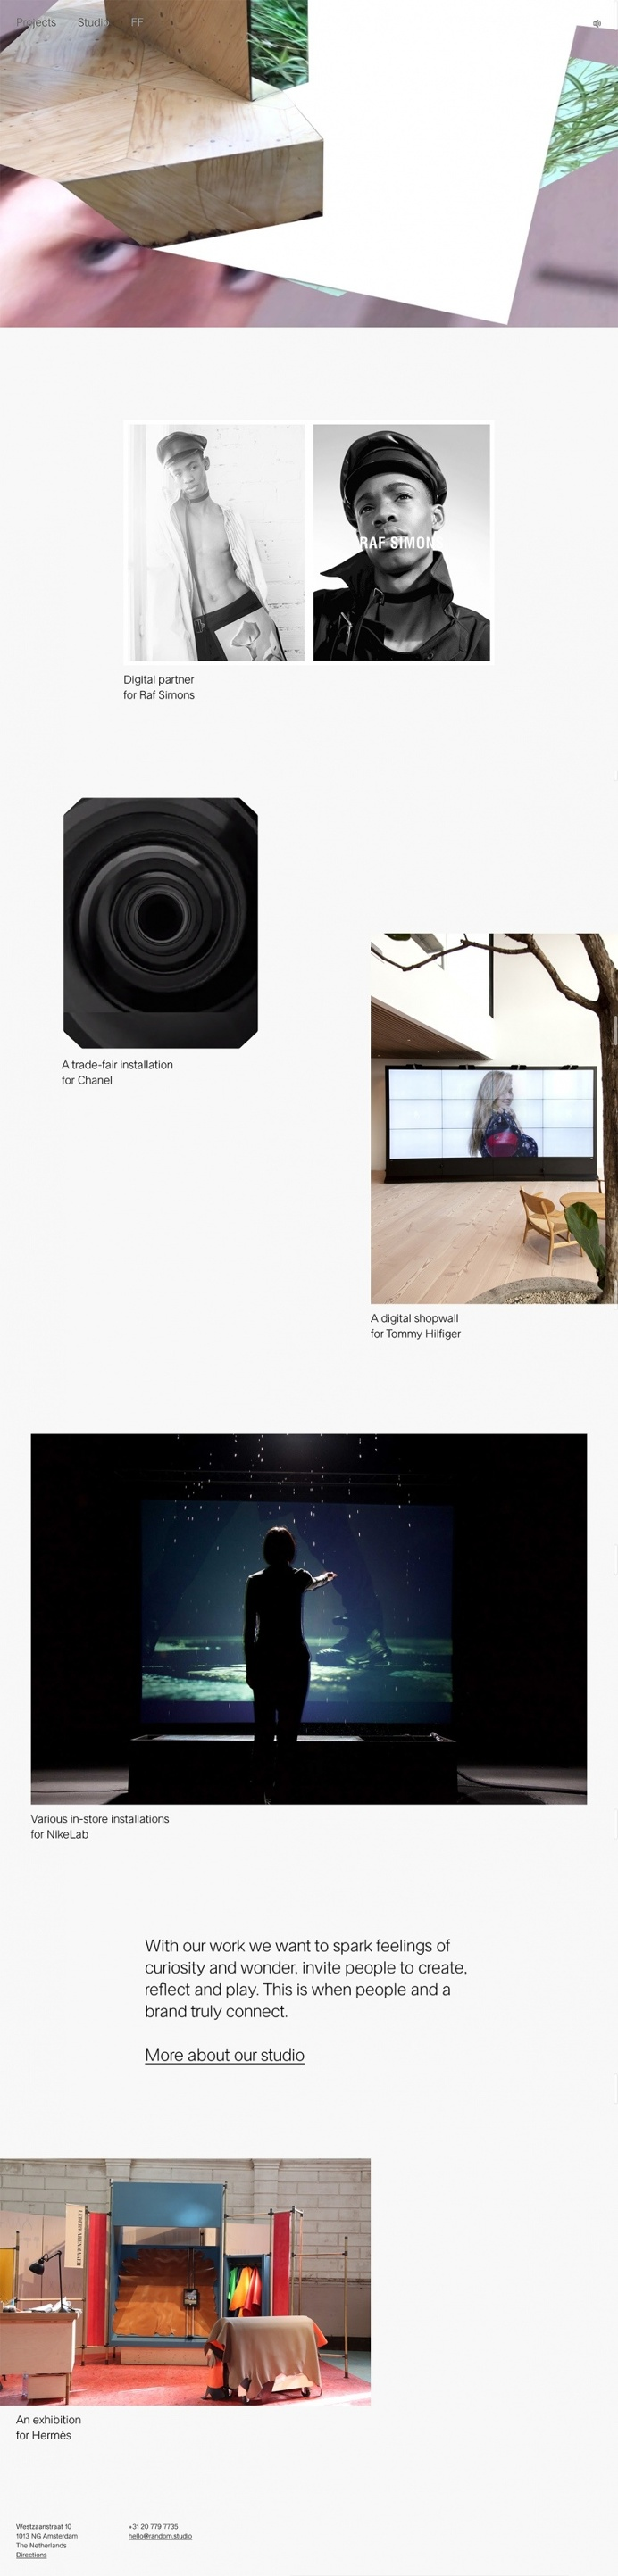 Random Studio - Mindsparkle Mag - Random is an Amsterdam based digital experience design studio whose website is awarded as site of the day